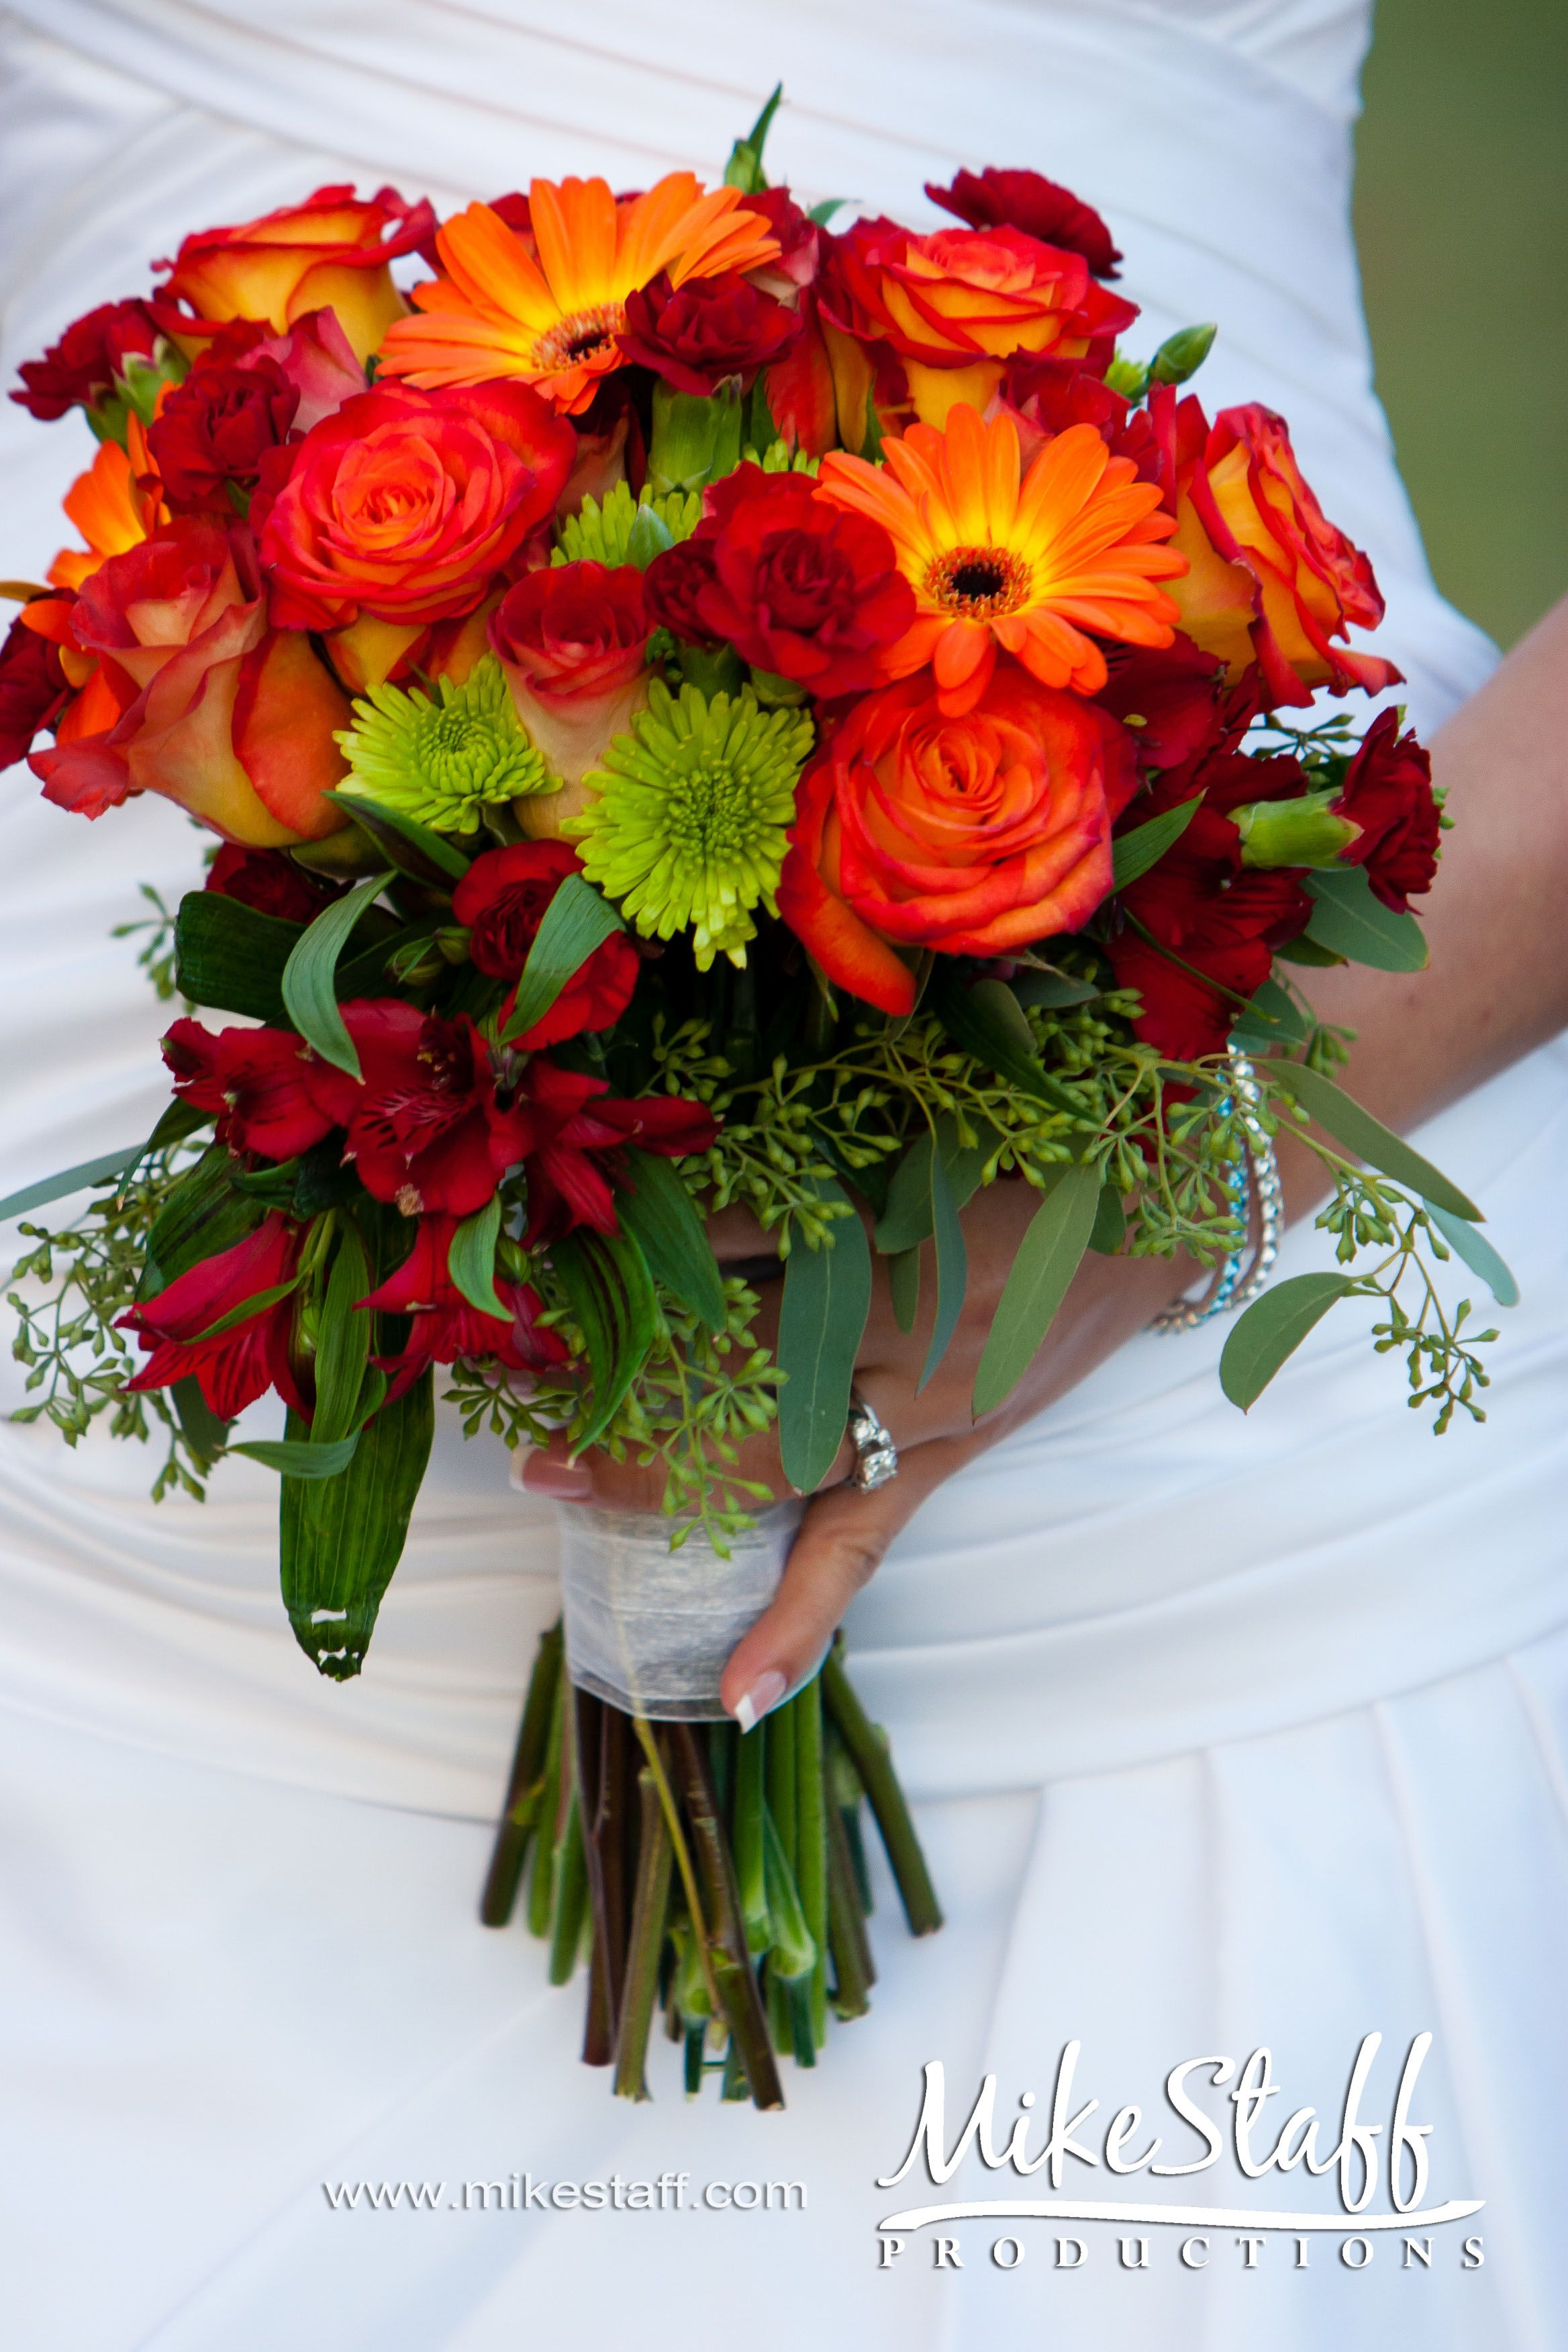 108 Fall Wedding Bouquets That Inspire | Pinterest | Red carnation ...